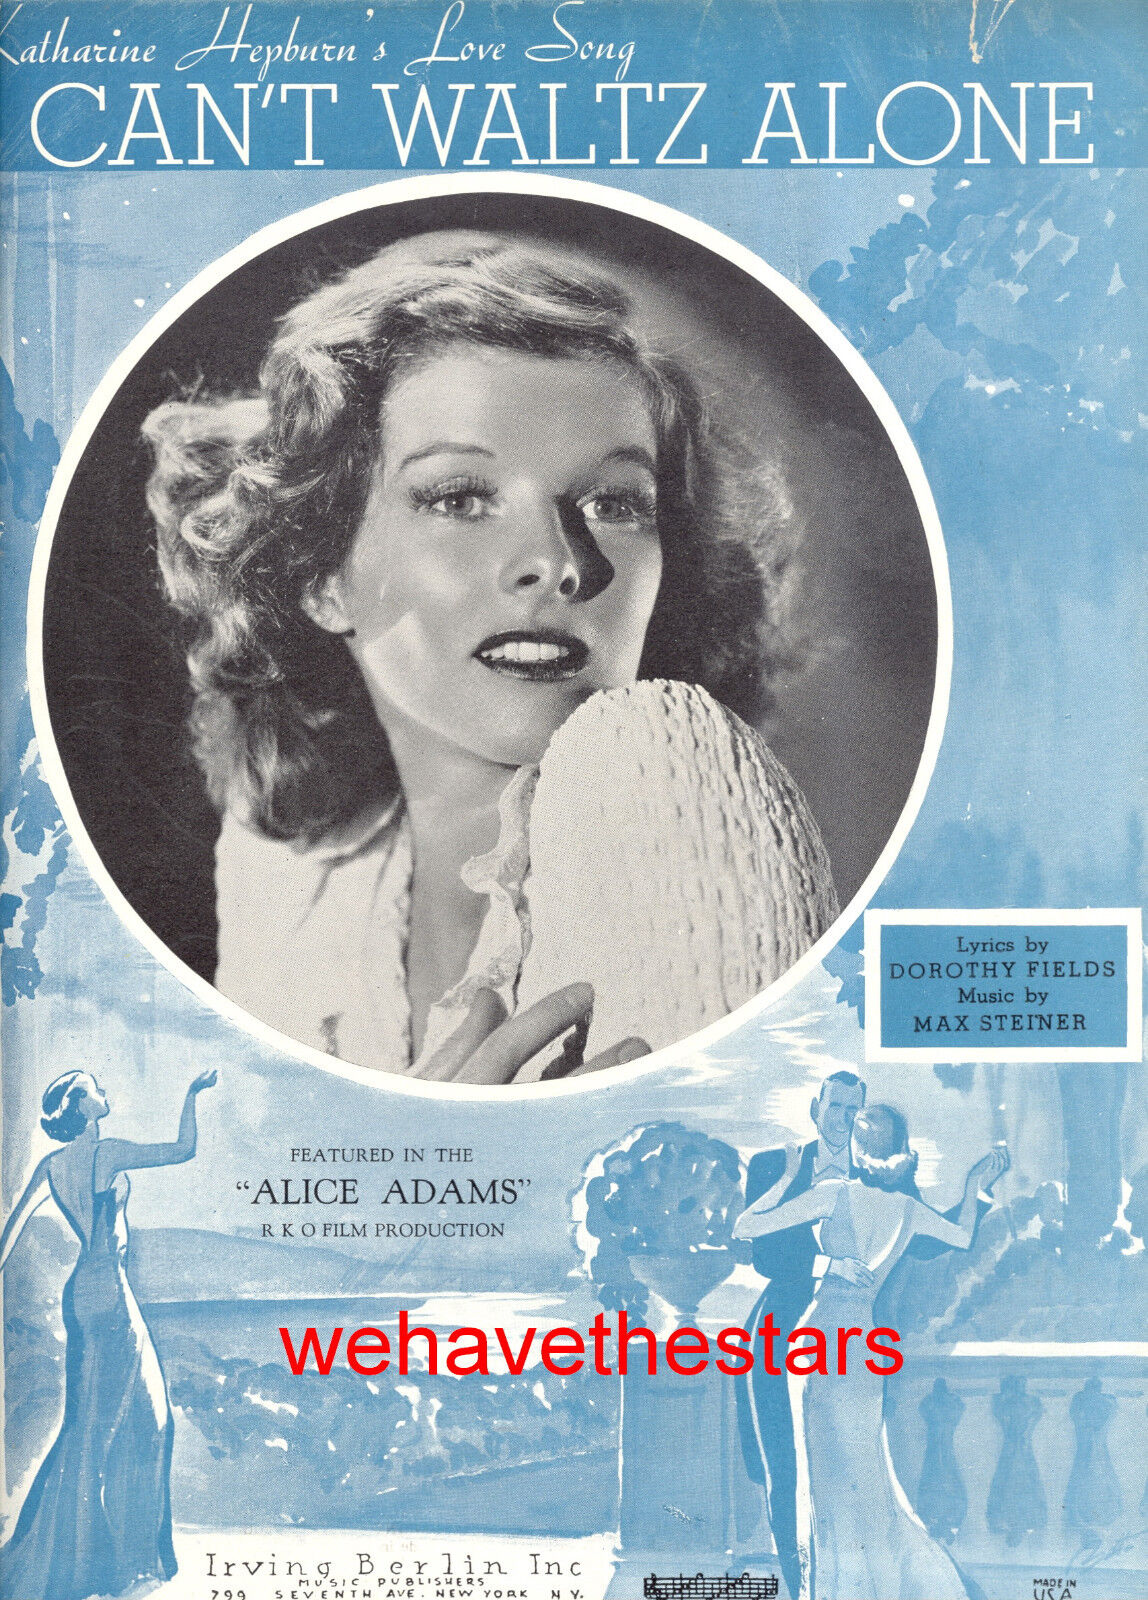 ALICE ADAMS Notenblatt  I Can't Waltz Alone  Katharine Hepburn